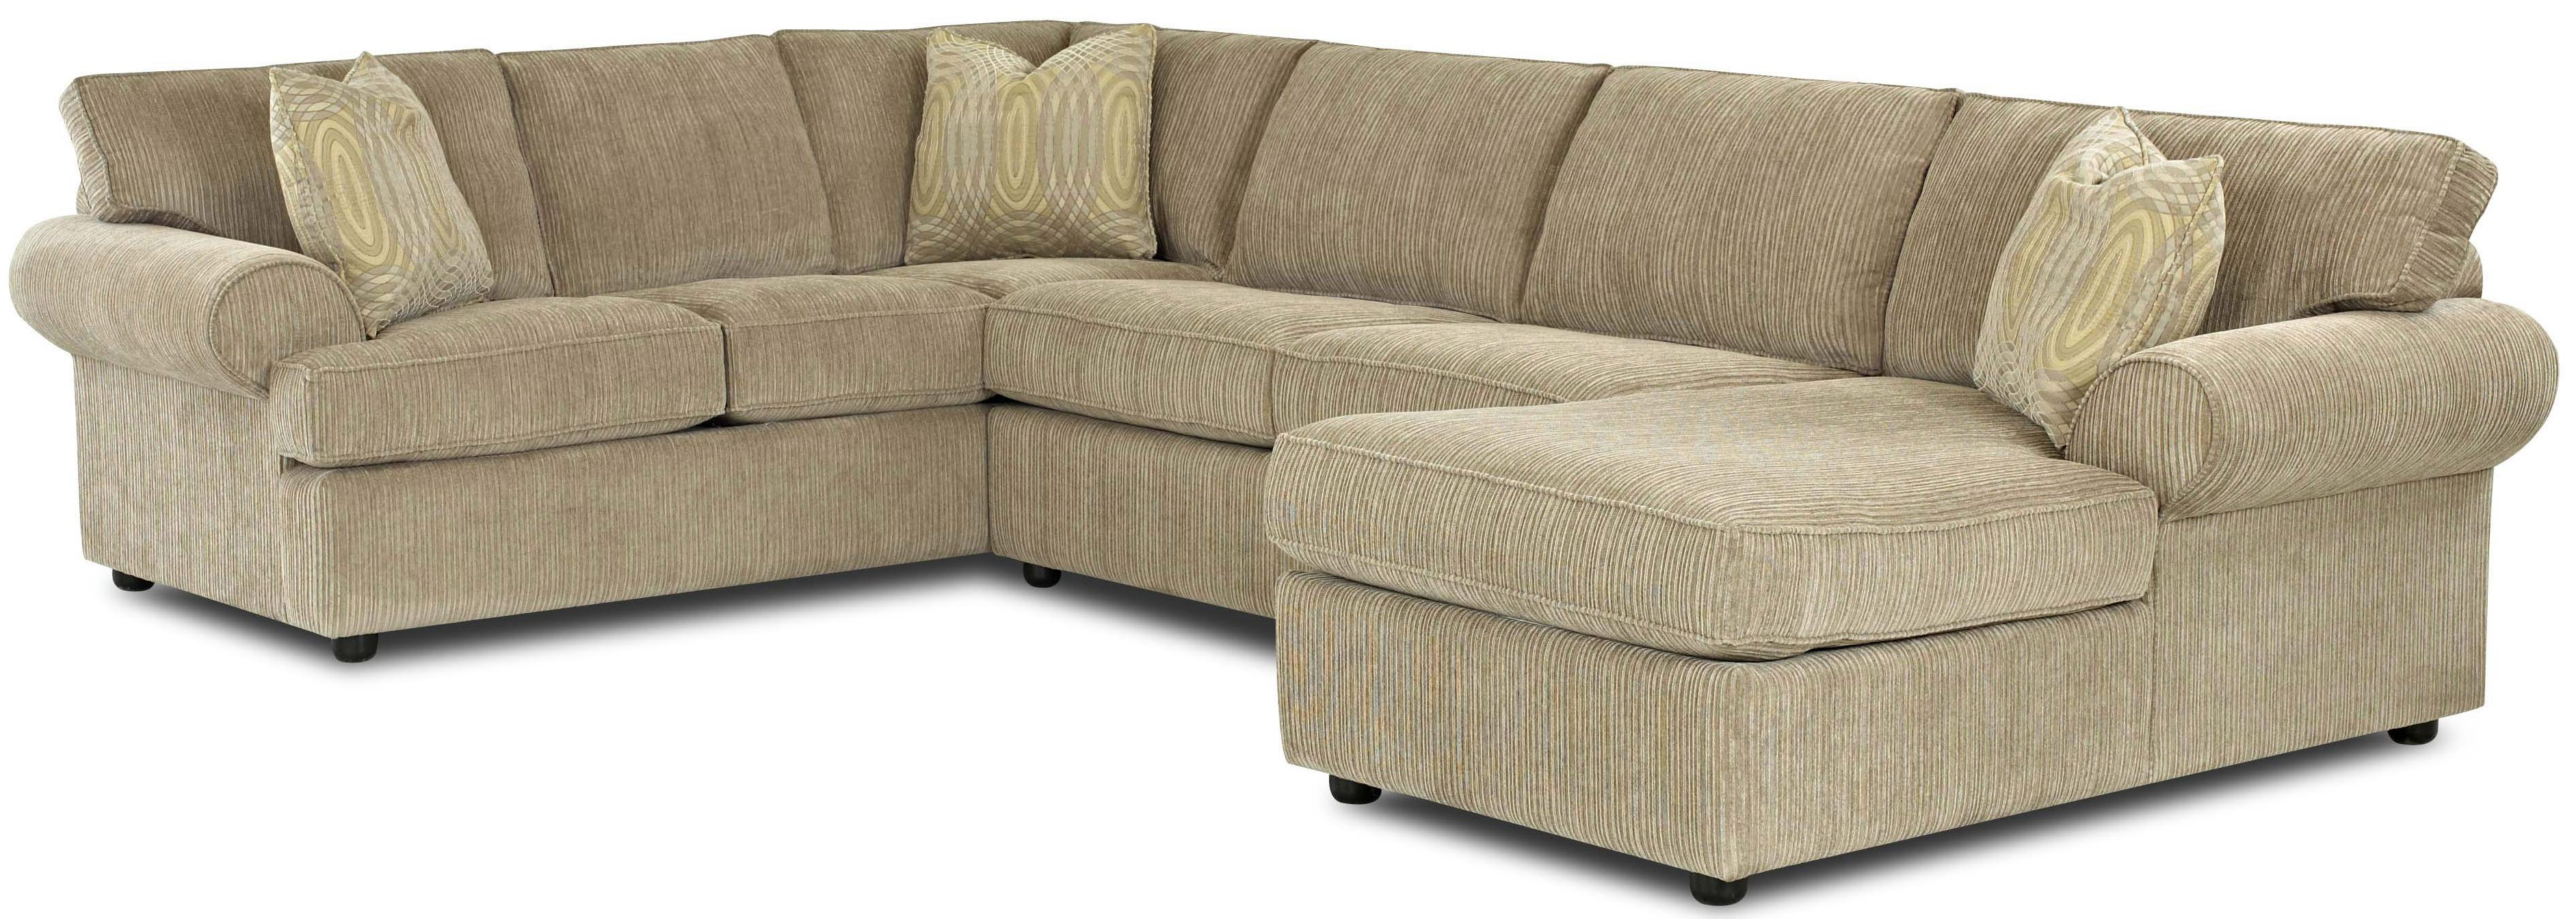 Klaussner Julington Transitional Sectional Sofa With Rolled Arms And With Regard To Most Popular Norfolk Grey 3 Piece Sectionals With Laf Chaise (View 9 of 20)